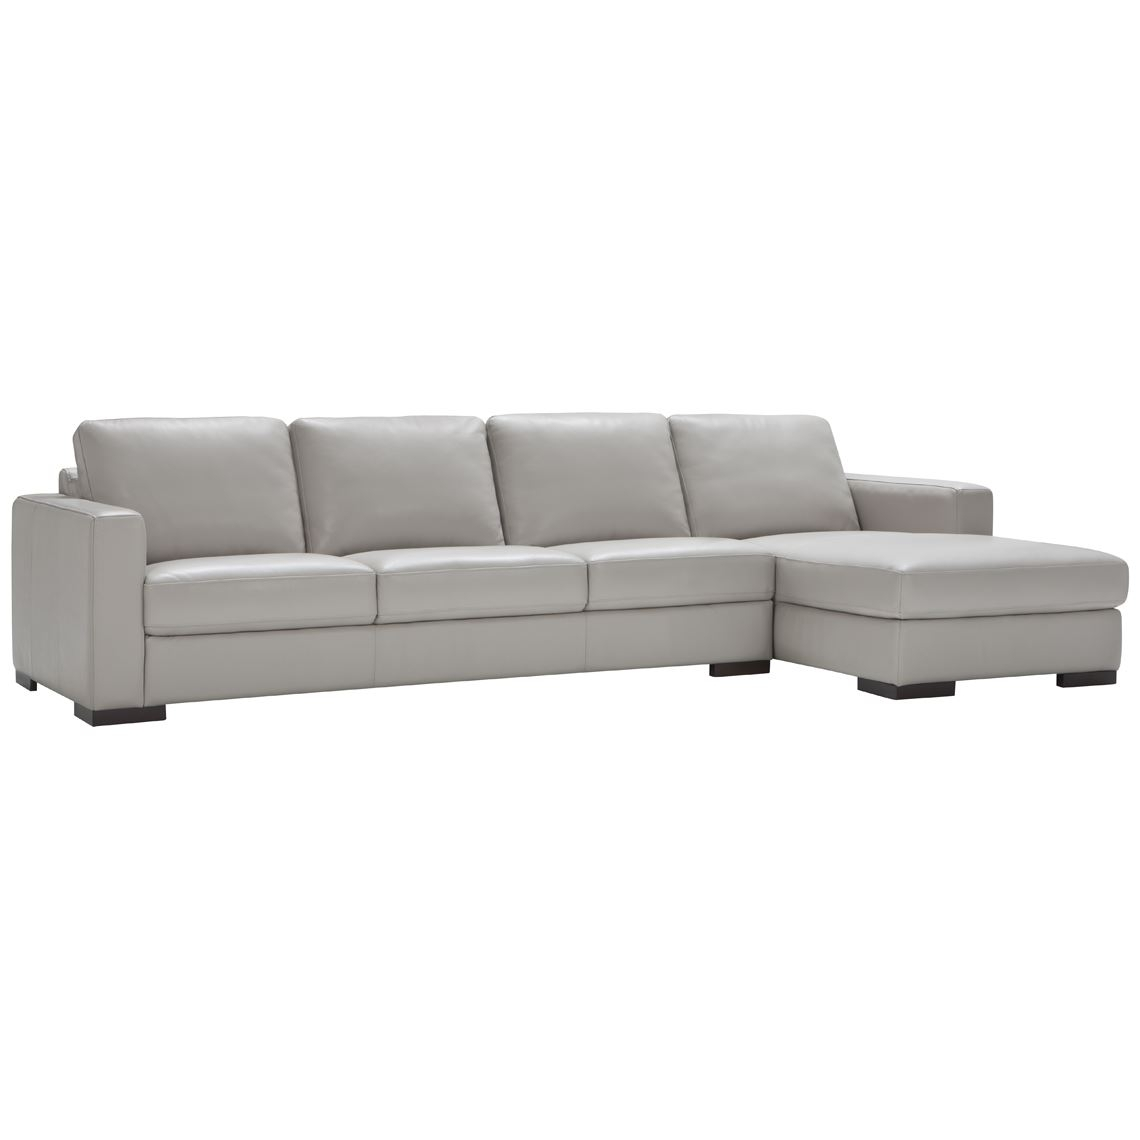 Raf Chaise Silver Grey Sig Contemp (Std) Laf Mod 3S + | Freedom Within Lucy Grey 2 Piece Sleeper Sectionals With Raf Chaise (View 21 of 25)